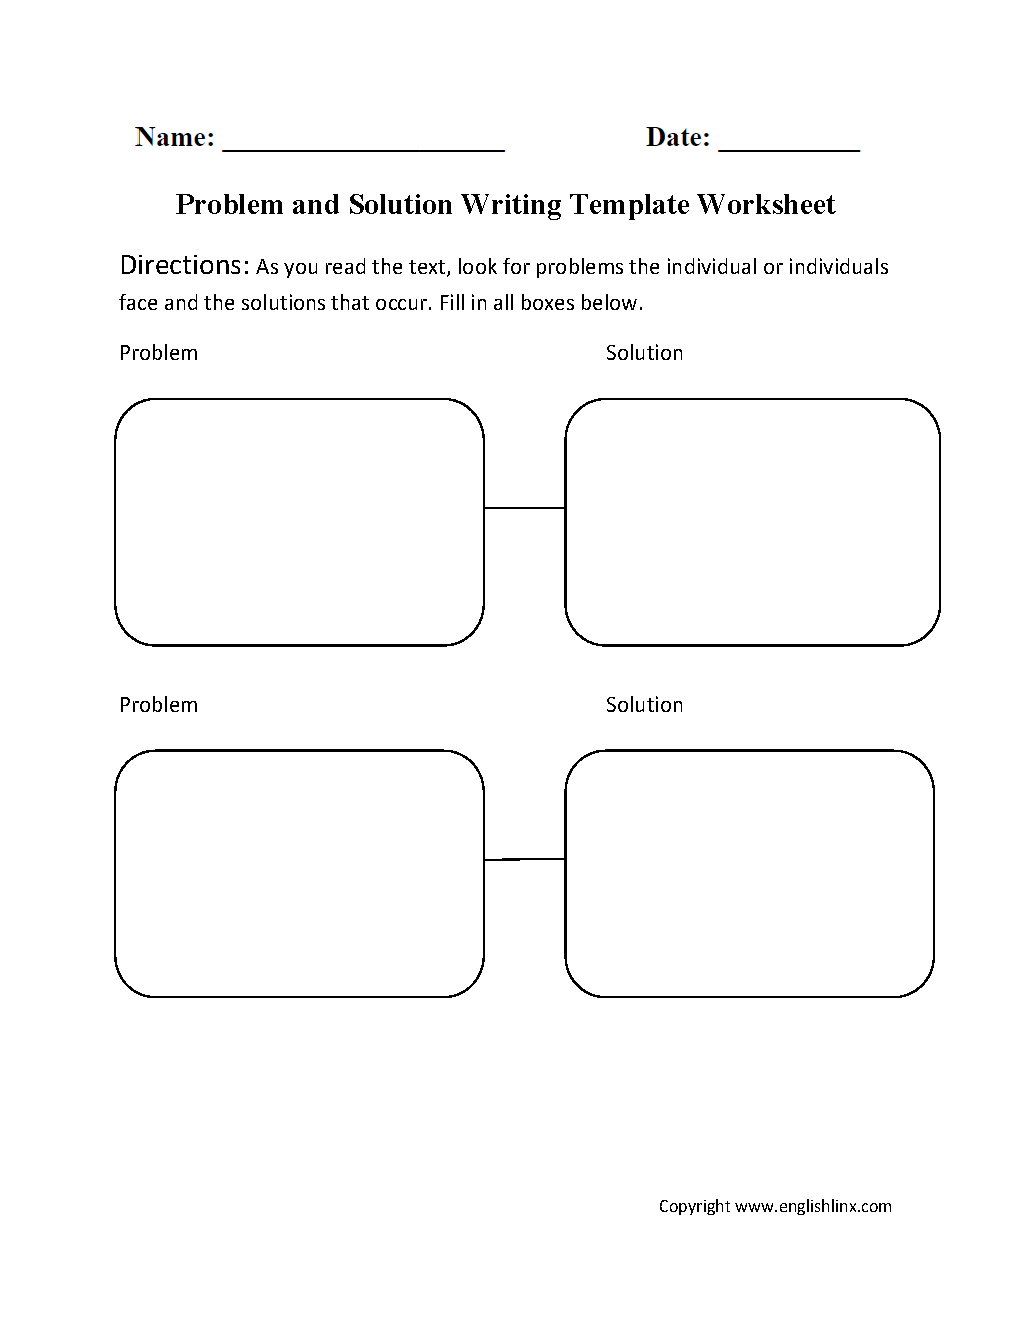 Worksheet Problem And Solution Worksheets writing template worksheets problem and solution worksheet